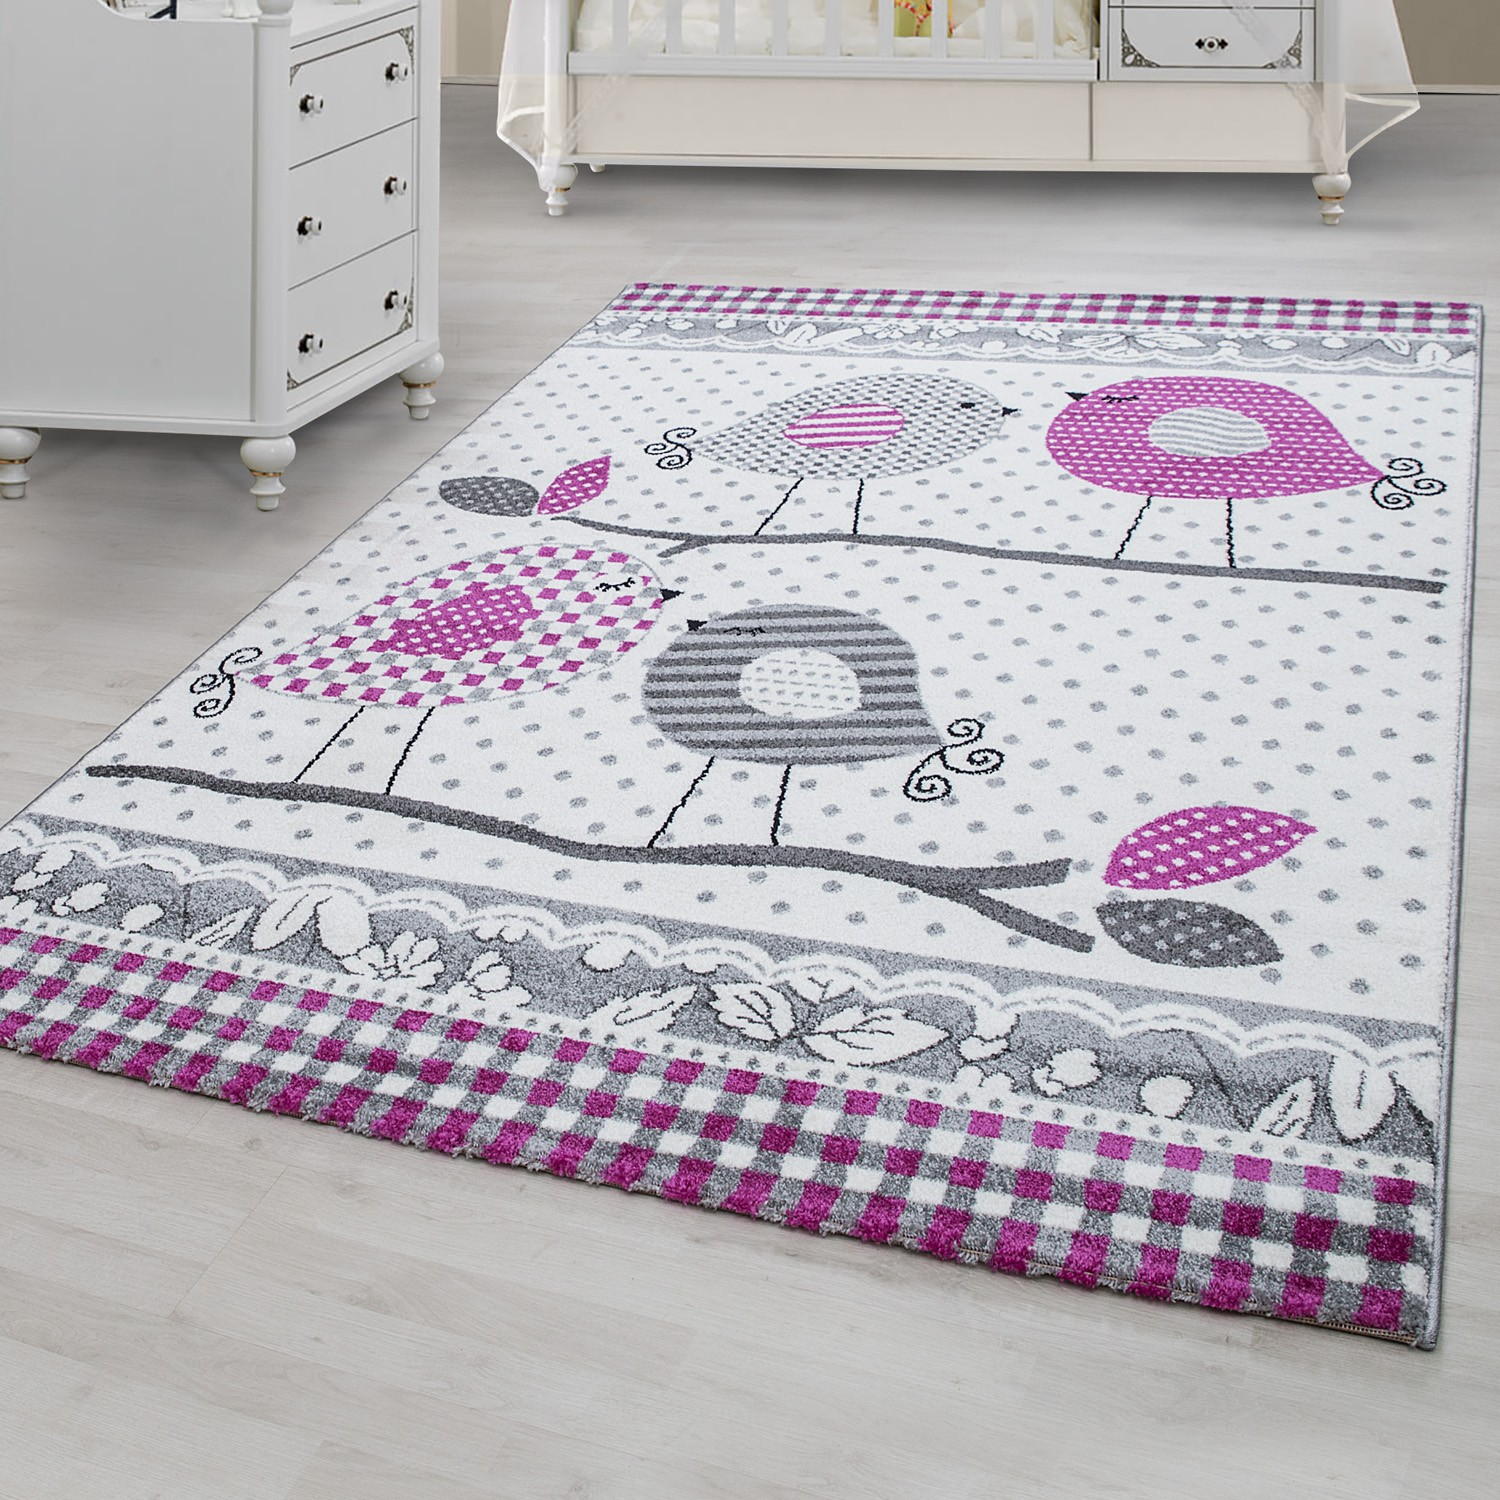 tapis pour chambre bebe fille lila rose et gris. Black Bedroom Furniture Sets. Home Design Ideas